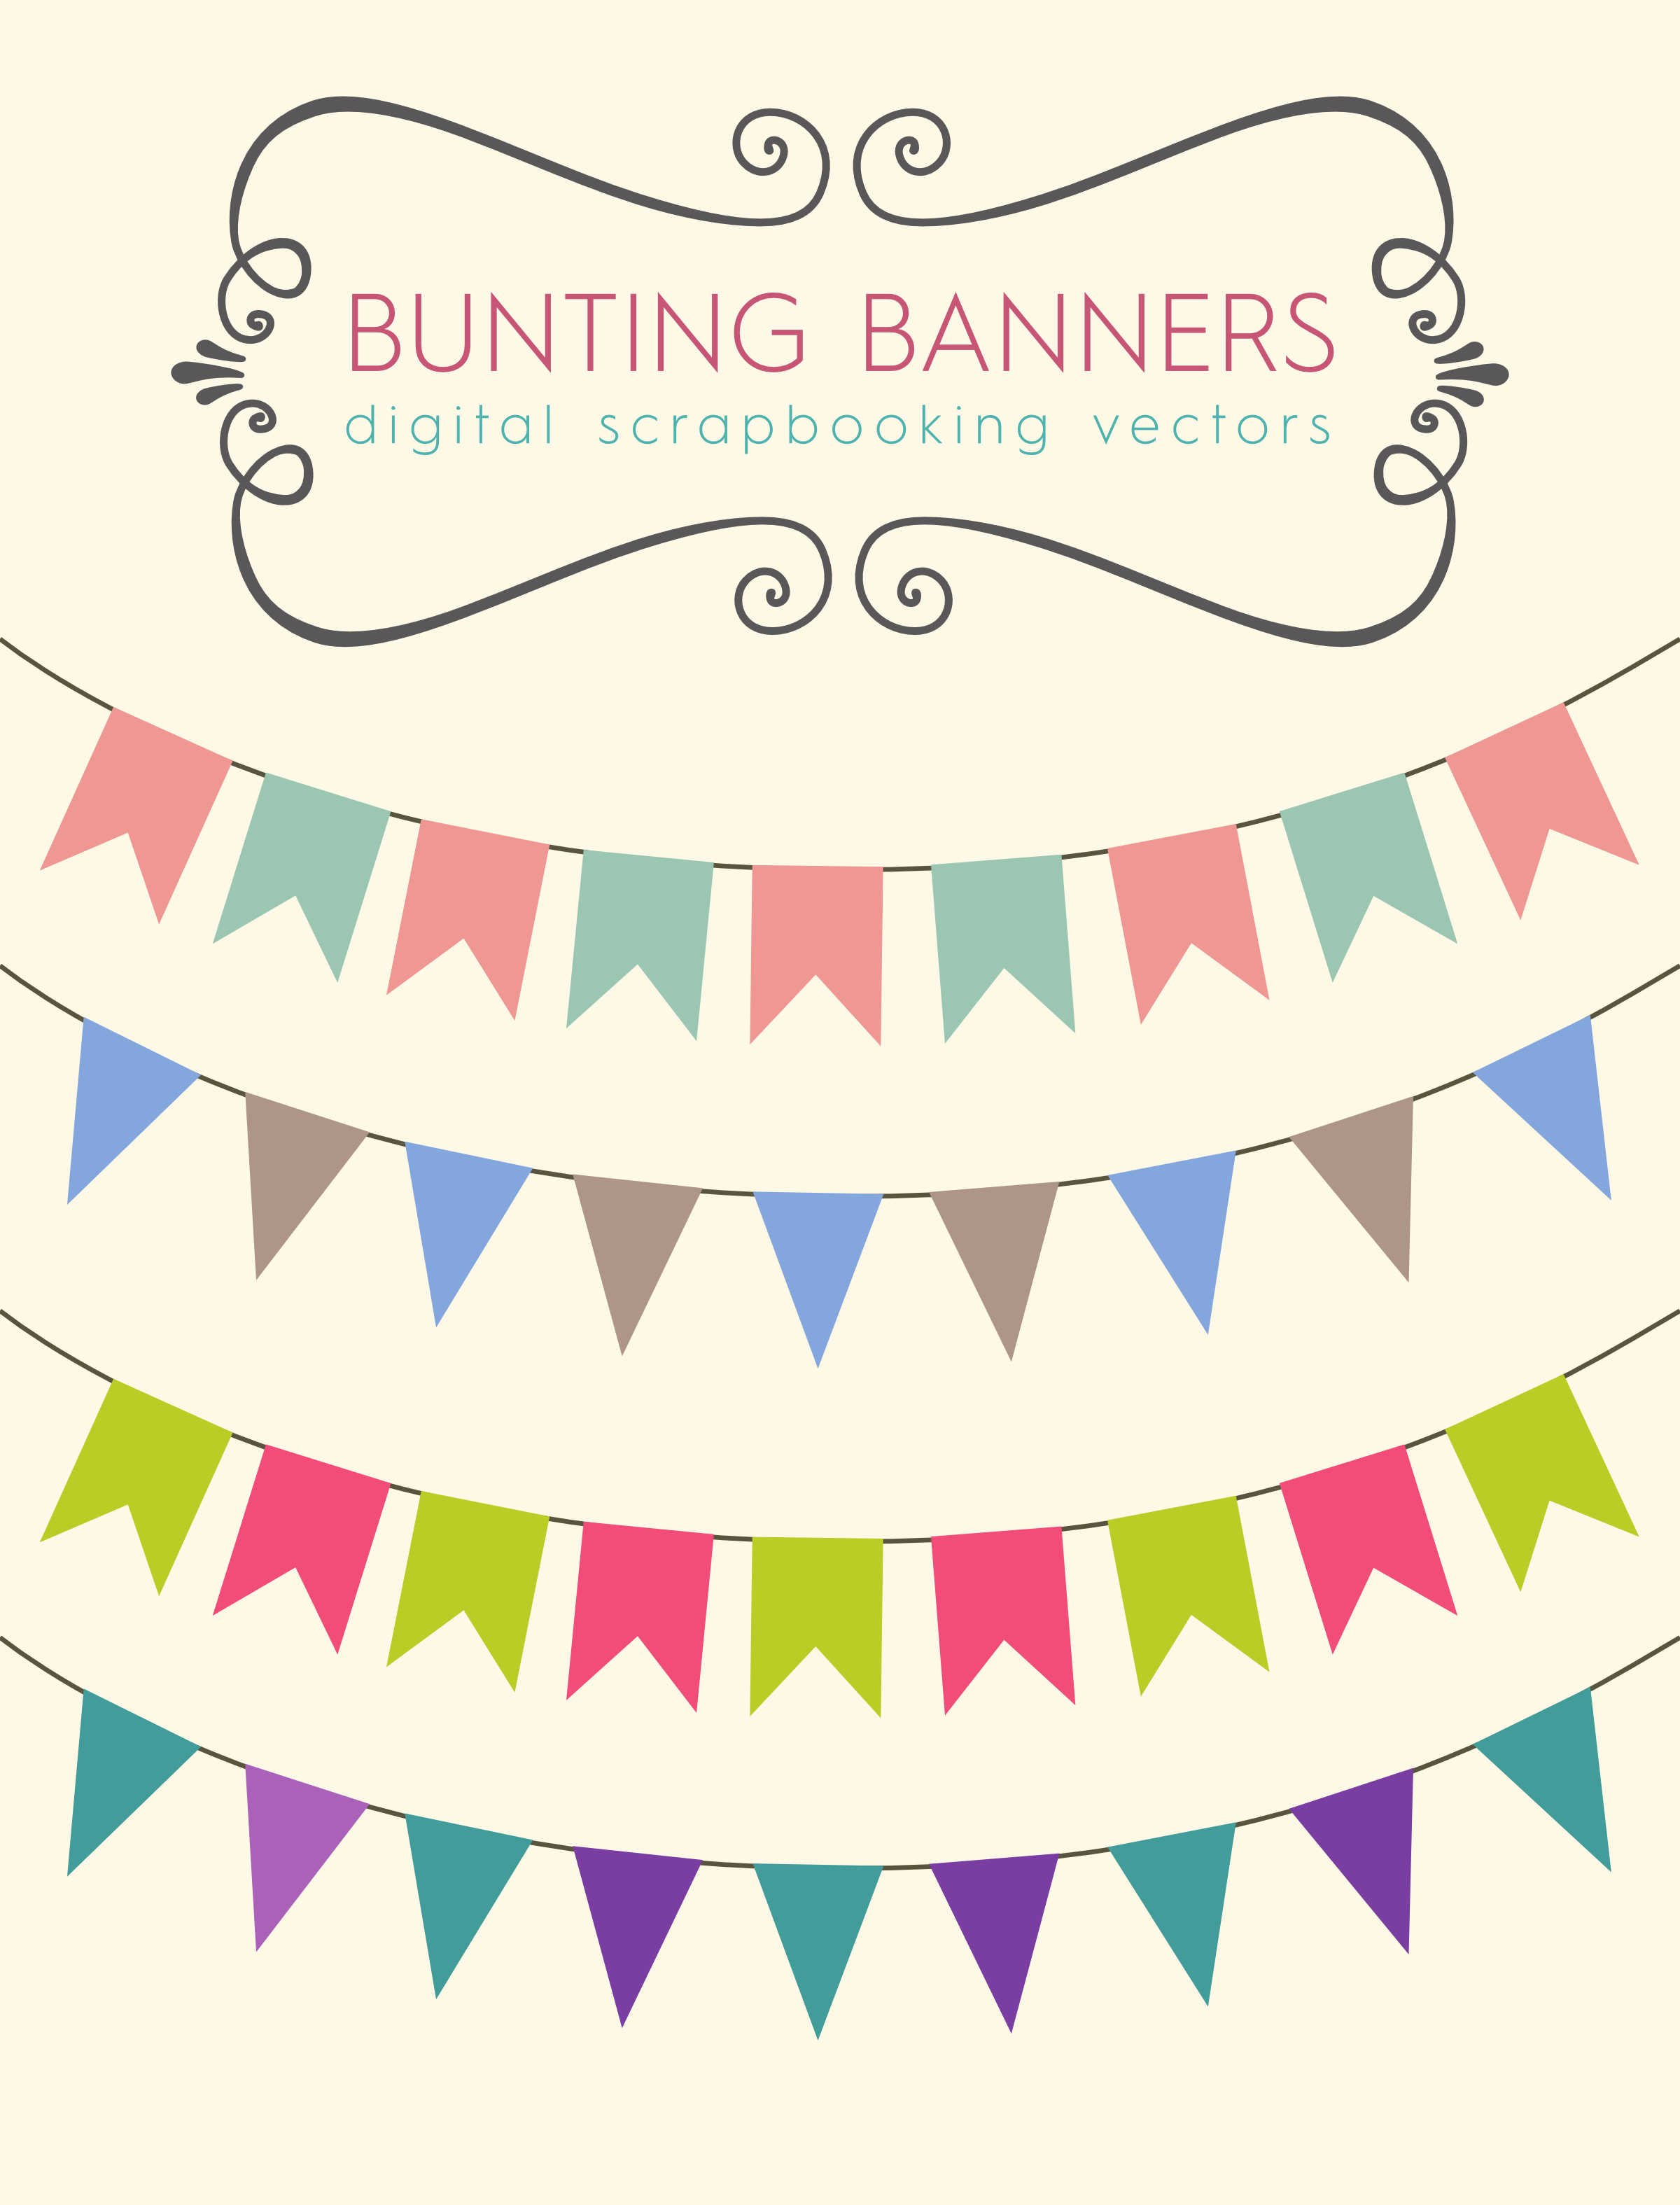 Download These Bunting Banners To Use For Your Party Printables Blog Or Scrapbooking Designs Ive Made A Free Stock Vector File As Well